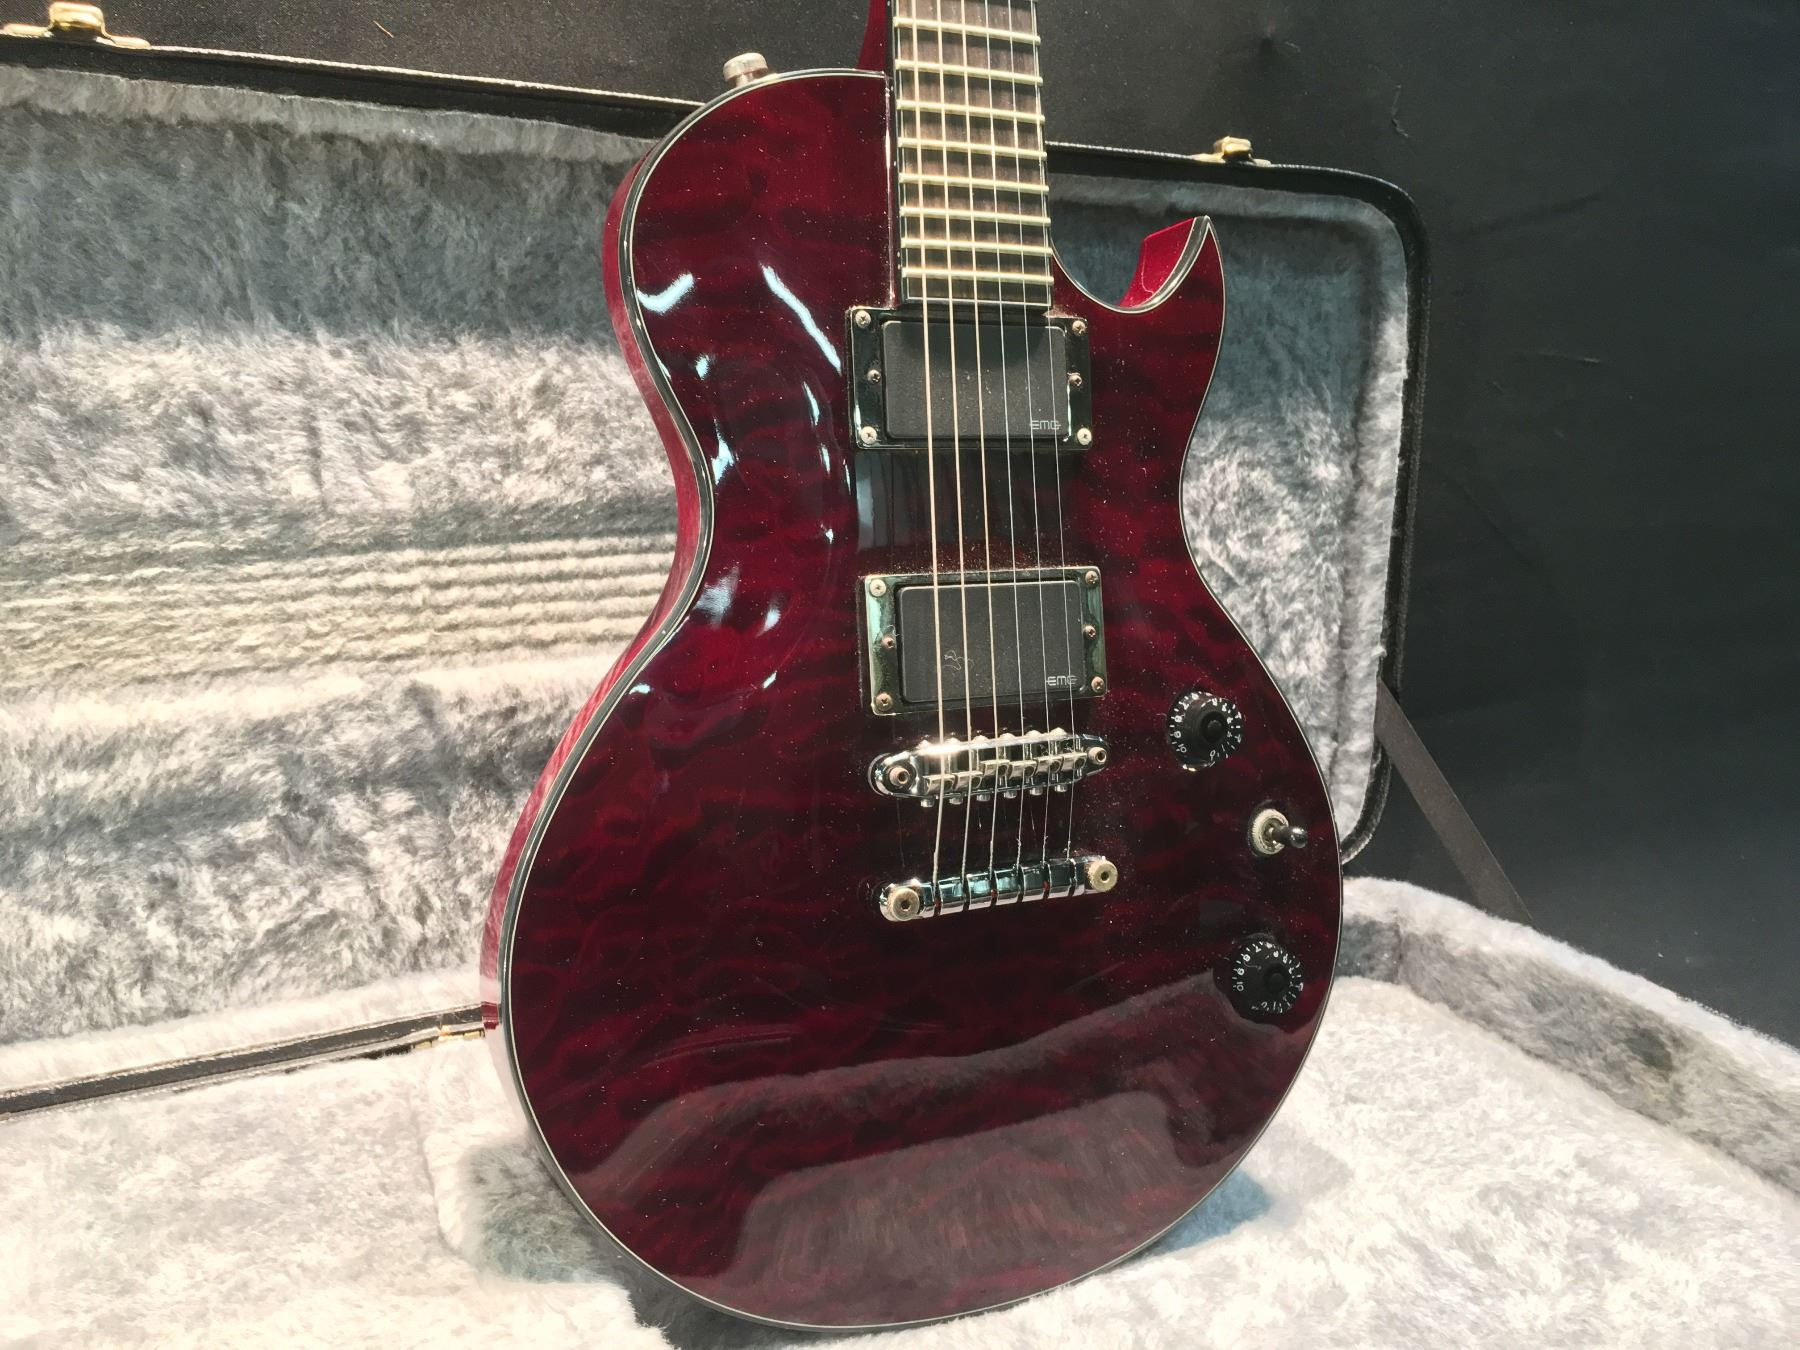 Ibanez N427 Les Paul Style Electric Guitar With Emg Pickups Comes